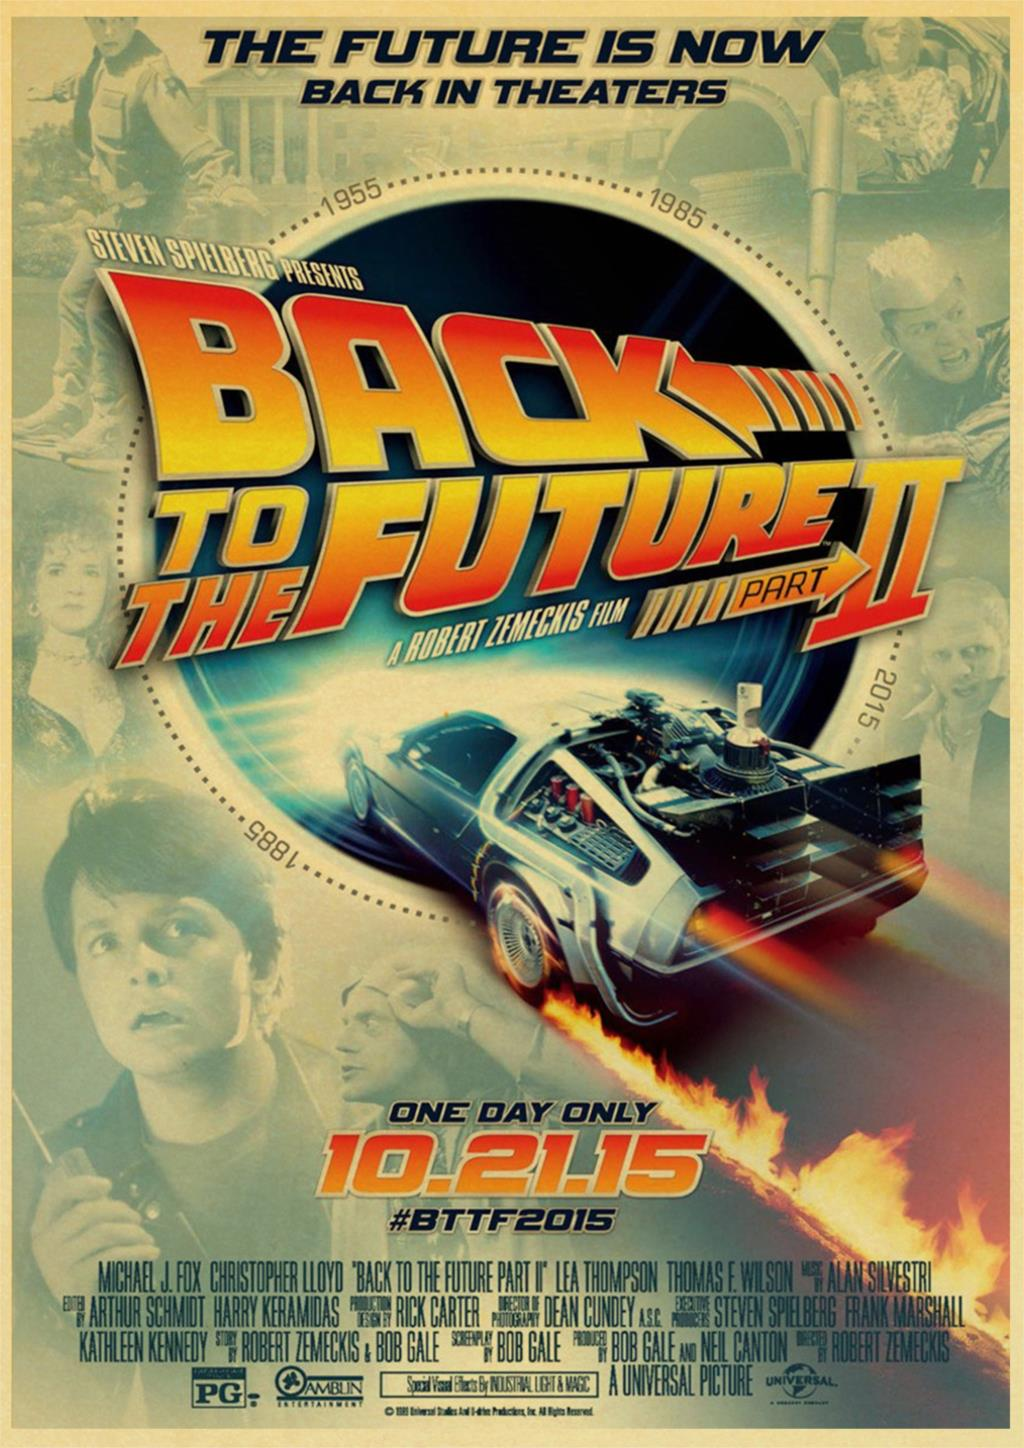 HTB1Gb8KOXzqK1RjSZFoq6zfcXXaq Classic Movie Back To The Future Vintage Posters For Home/Bar/Living Decor kraft Paper high quality poster wall sticker